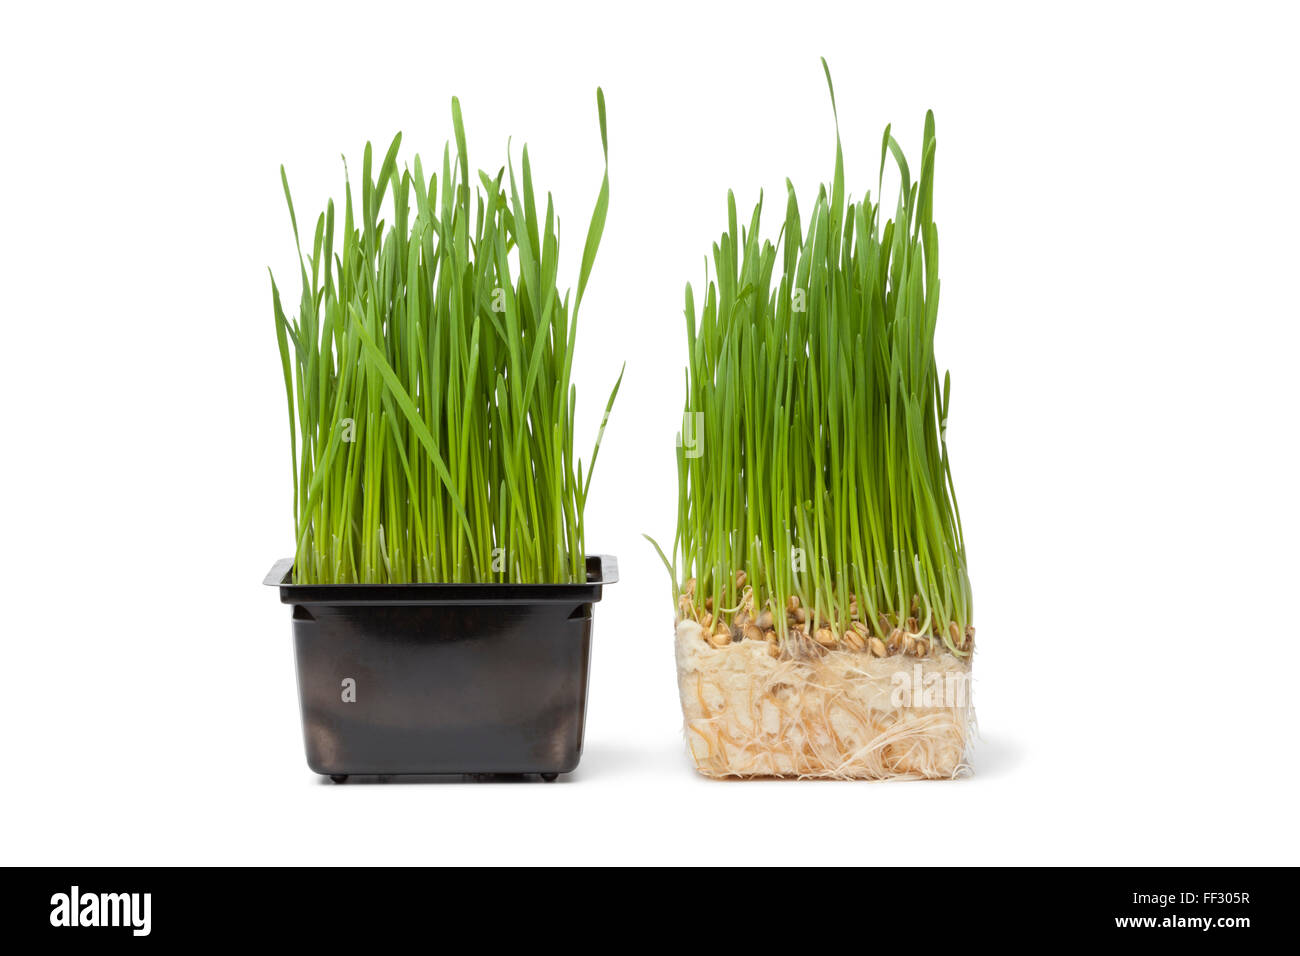 Organic wheat grass in plastic container on white background Stock Photo